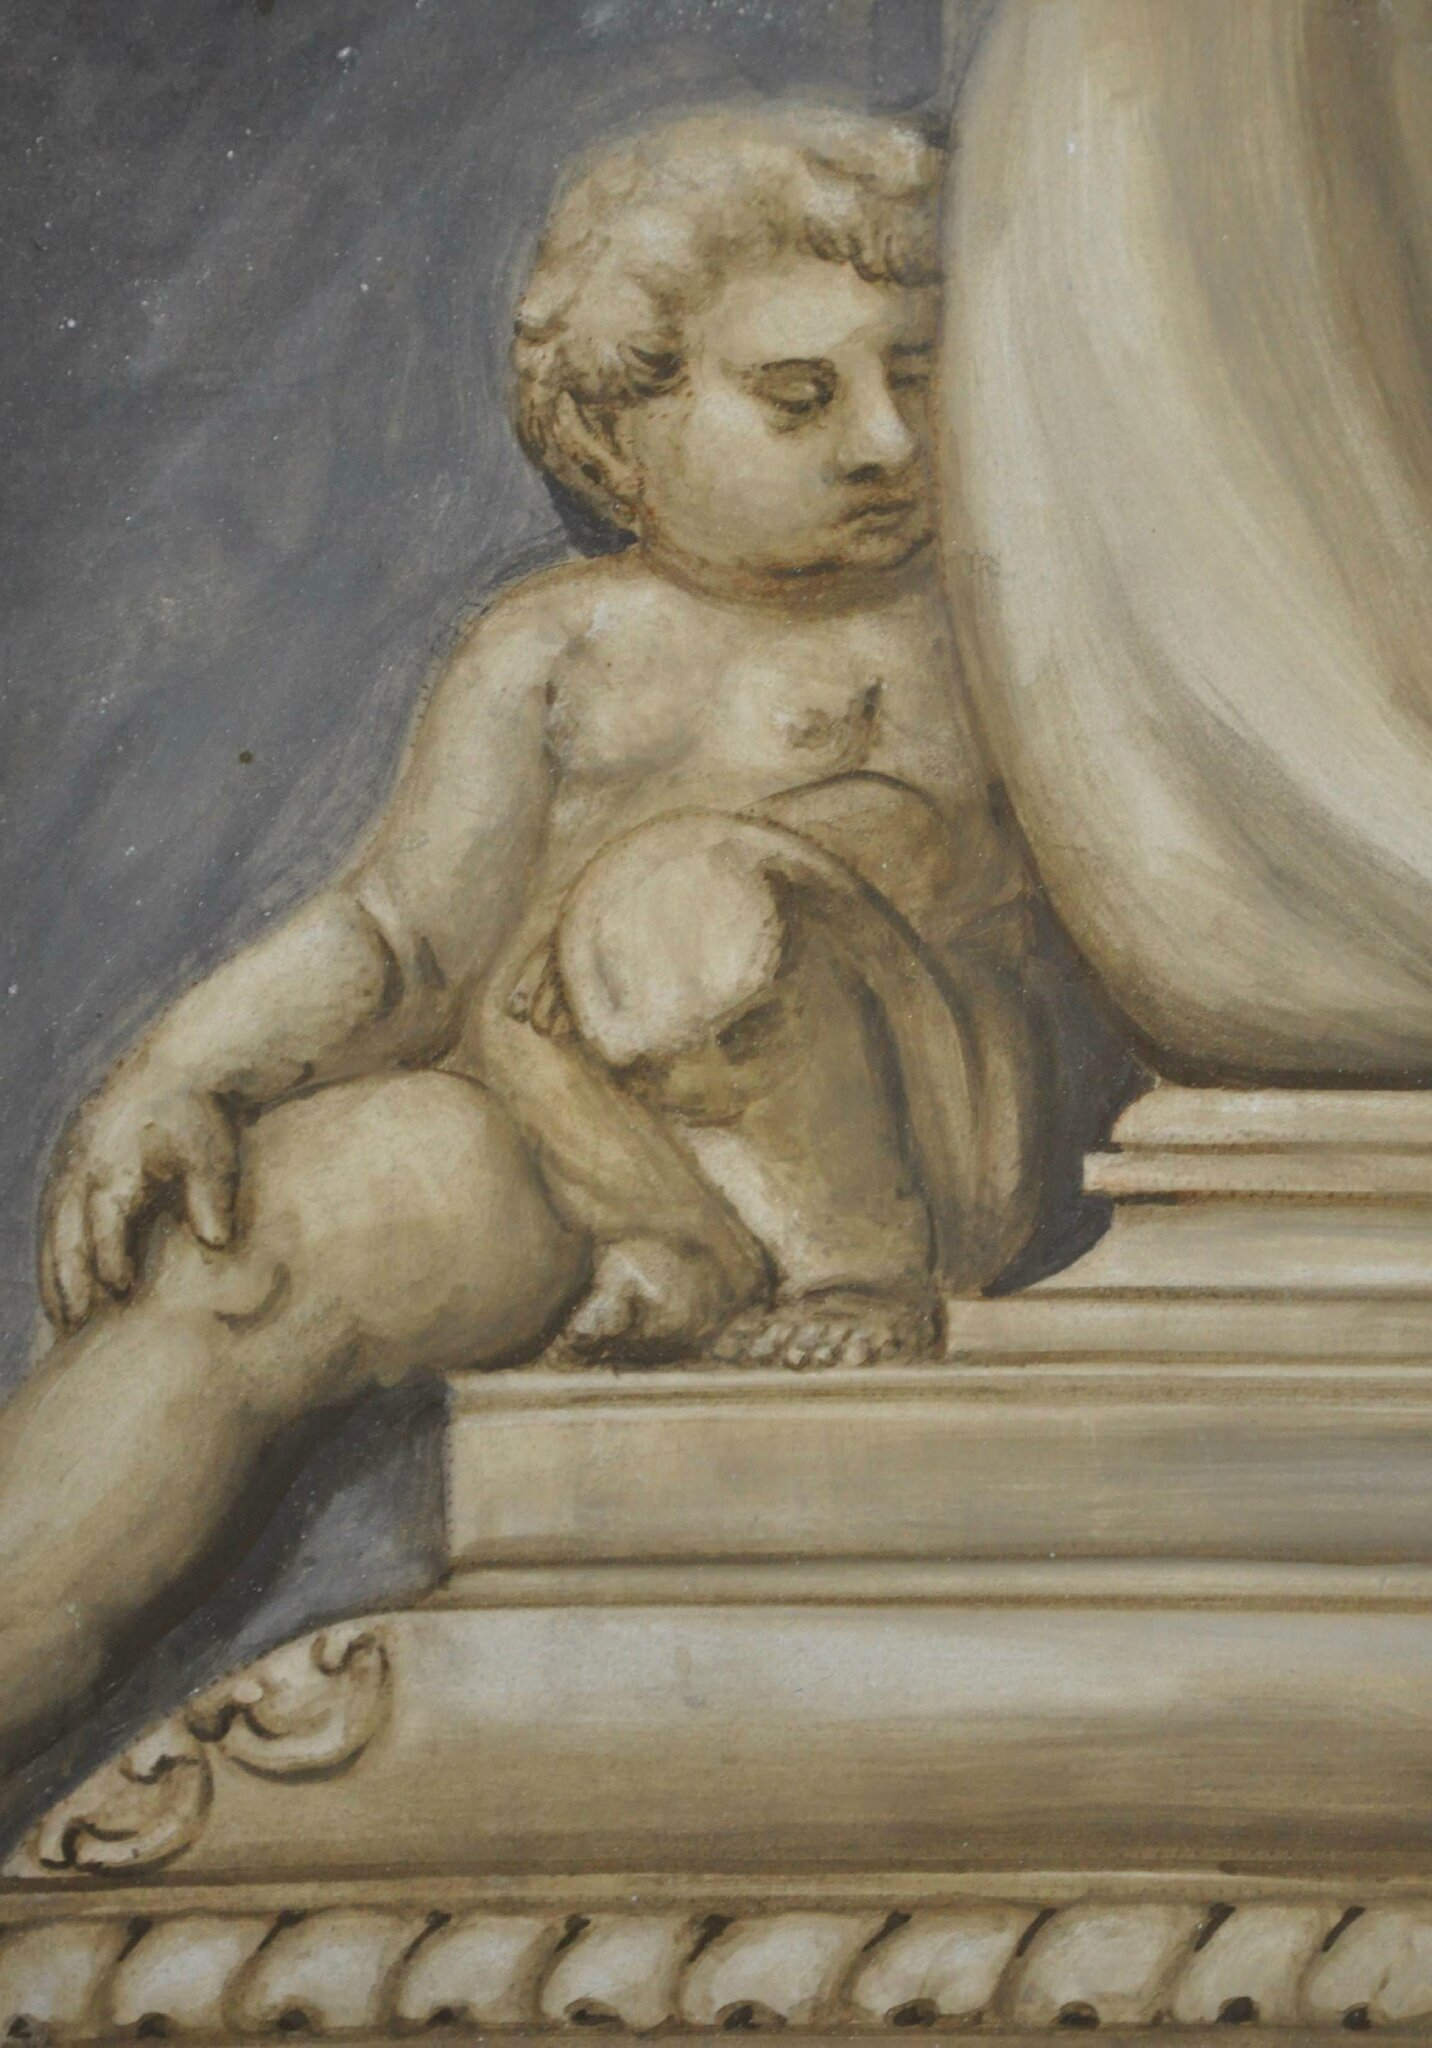 putto à fresco